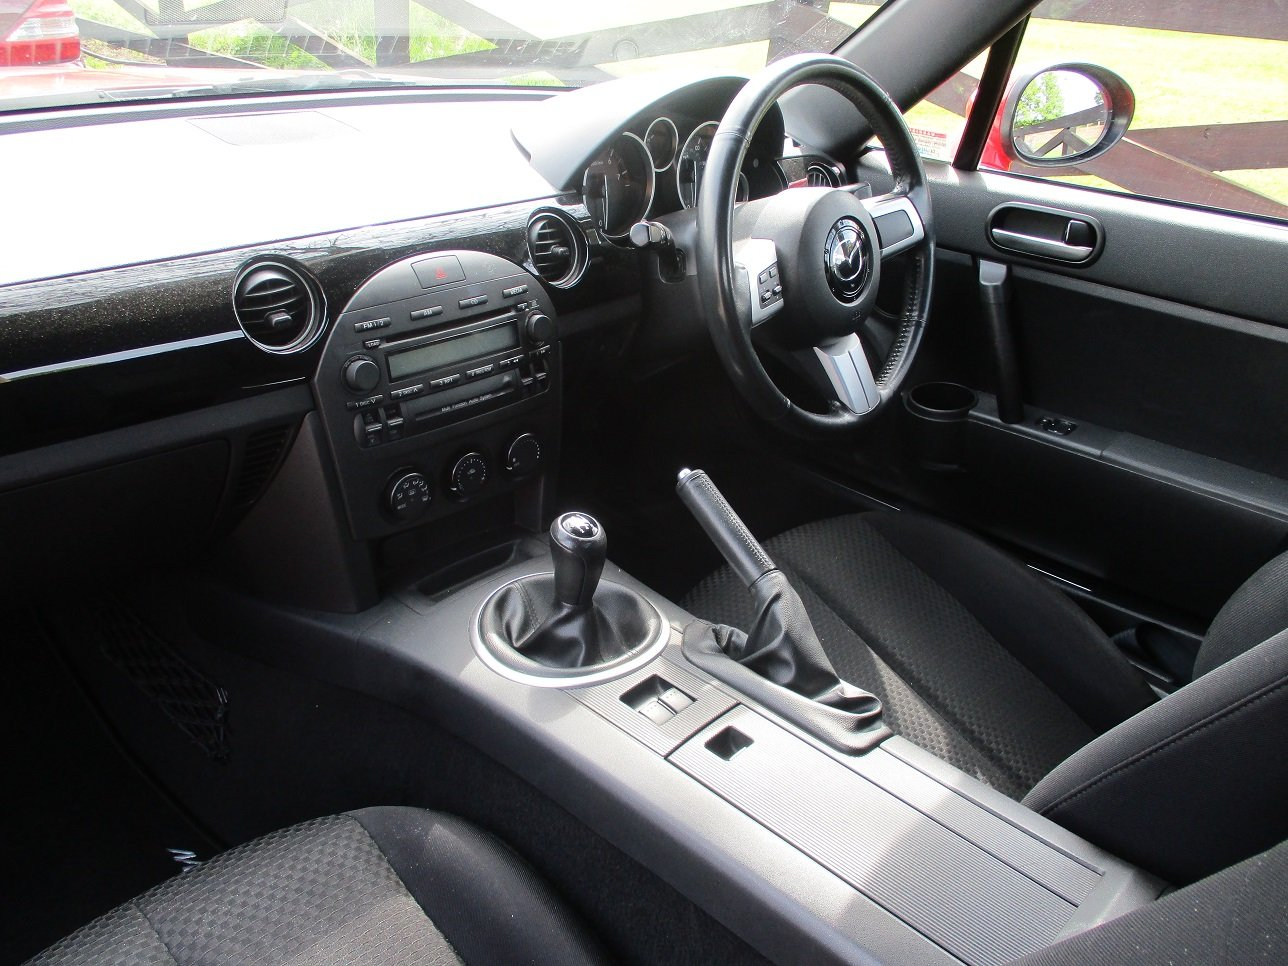 2007 Maxda MX-5 - Great Condition For Sale (picture 4 of 4)